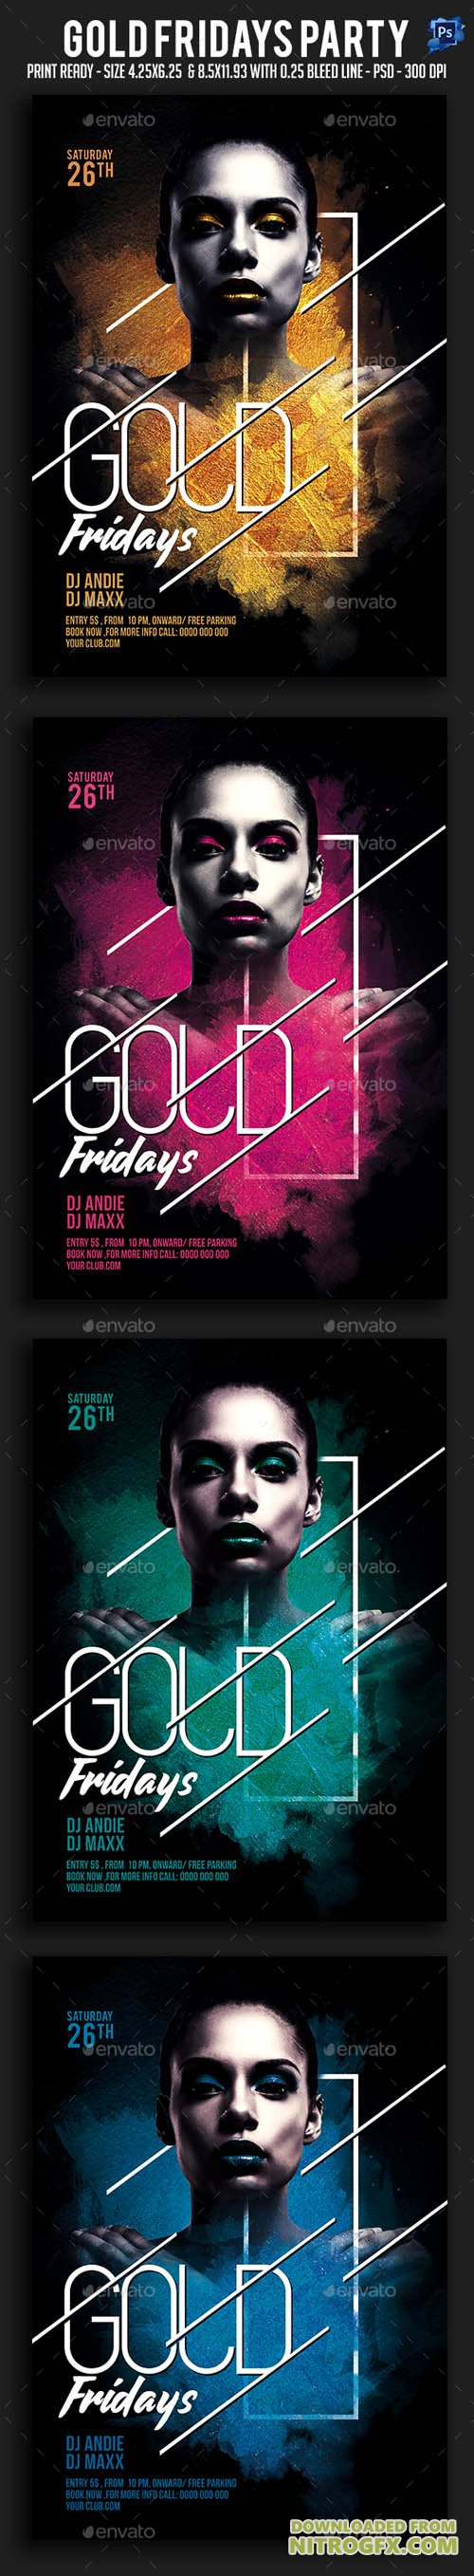 Gold Fridays Party Flyer 20693654